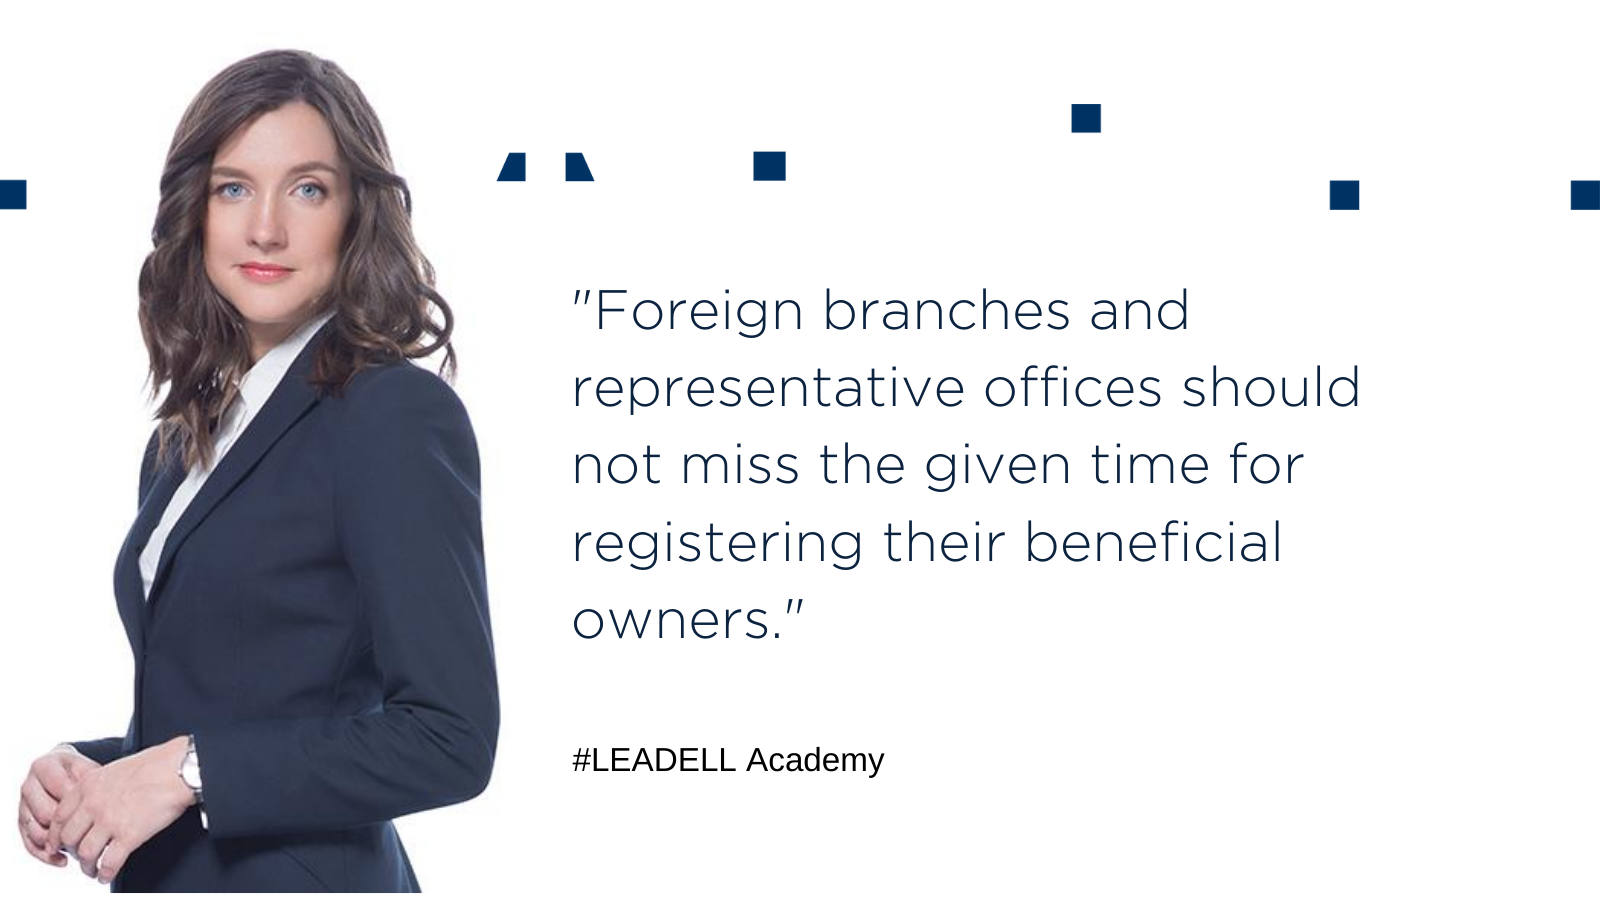 Beneficial owners Leadell Academy